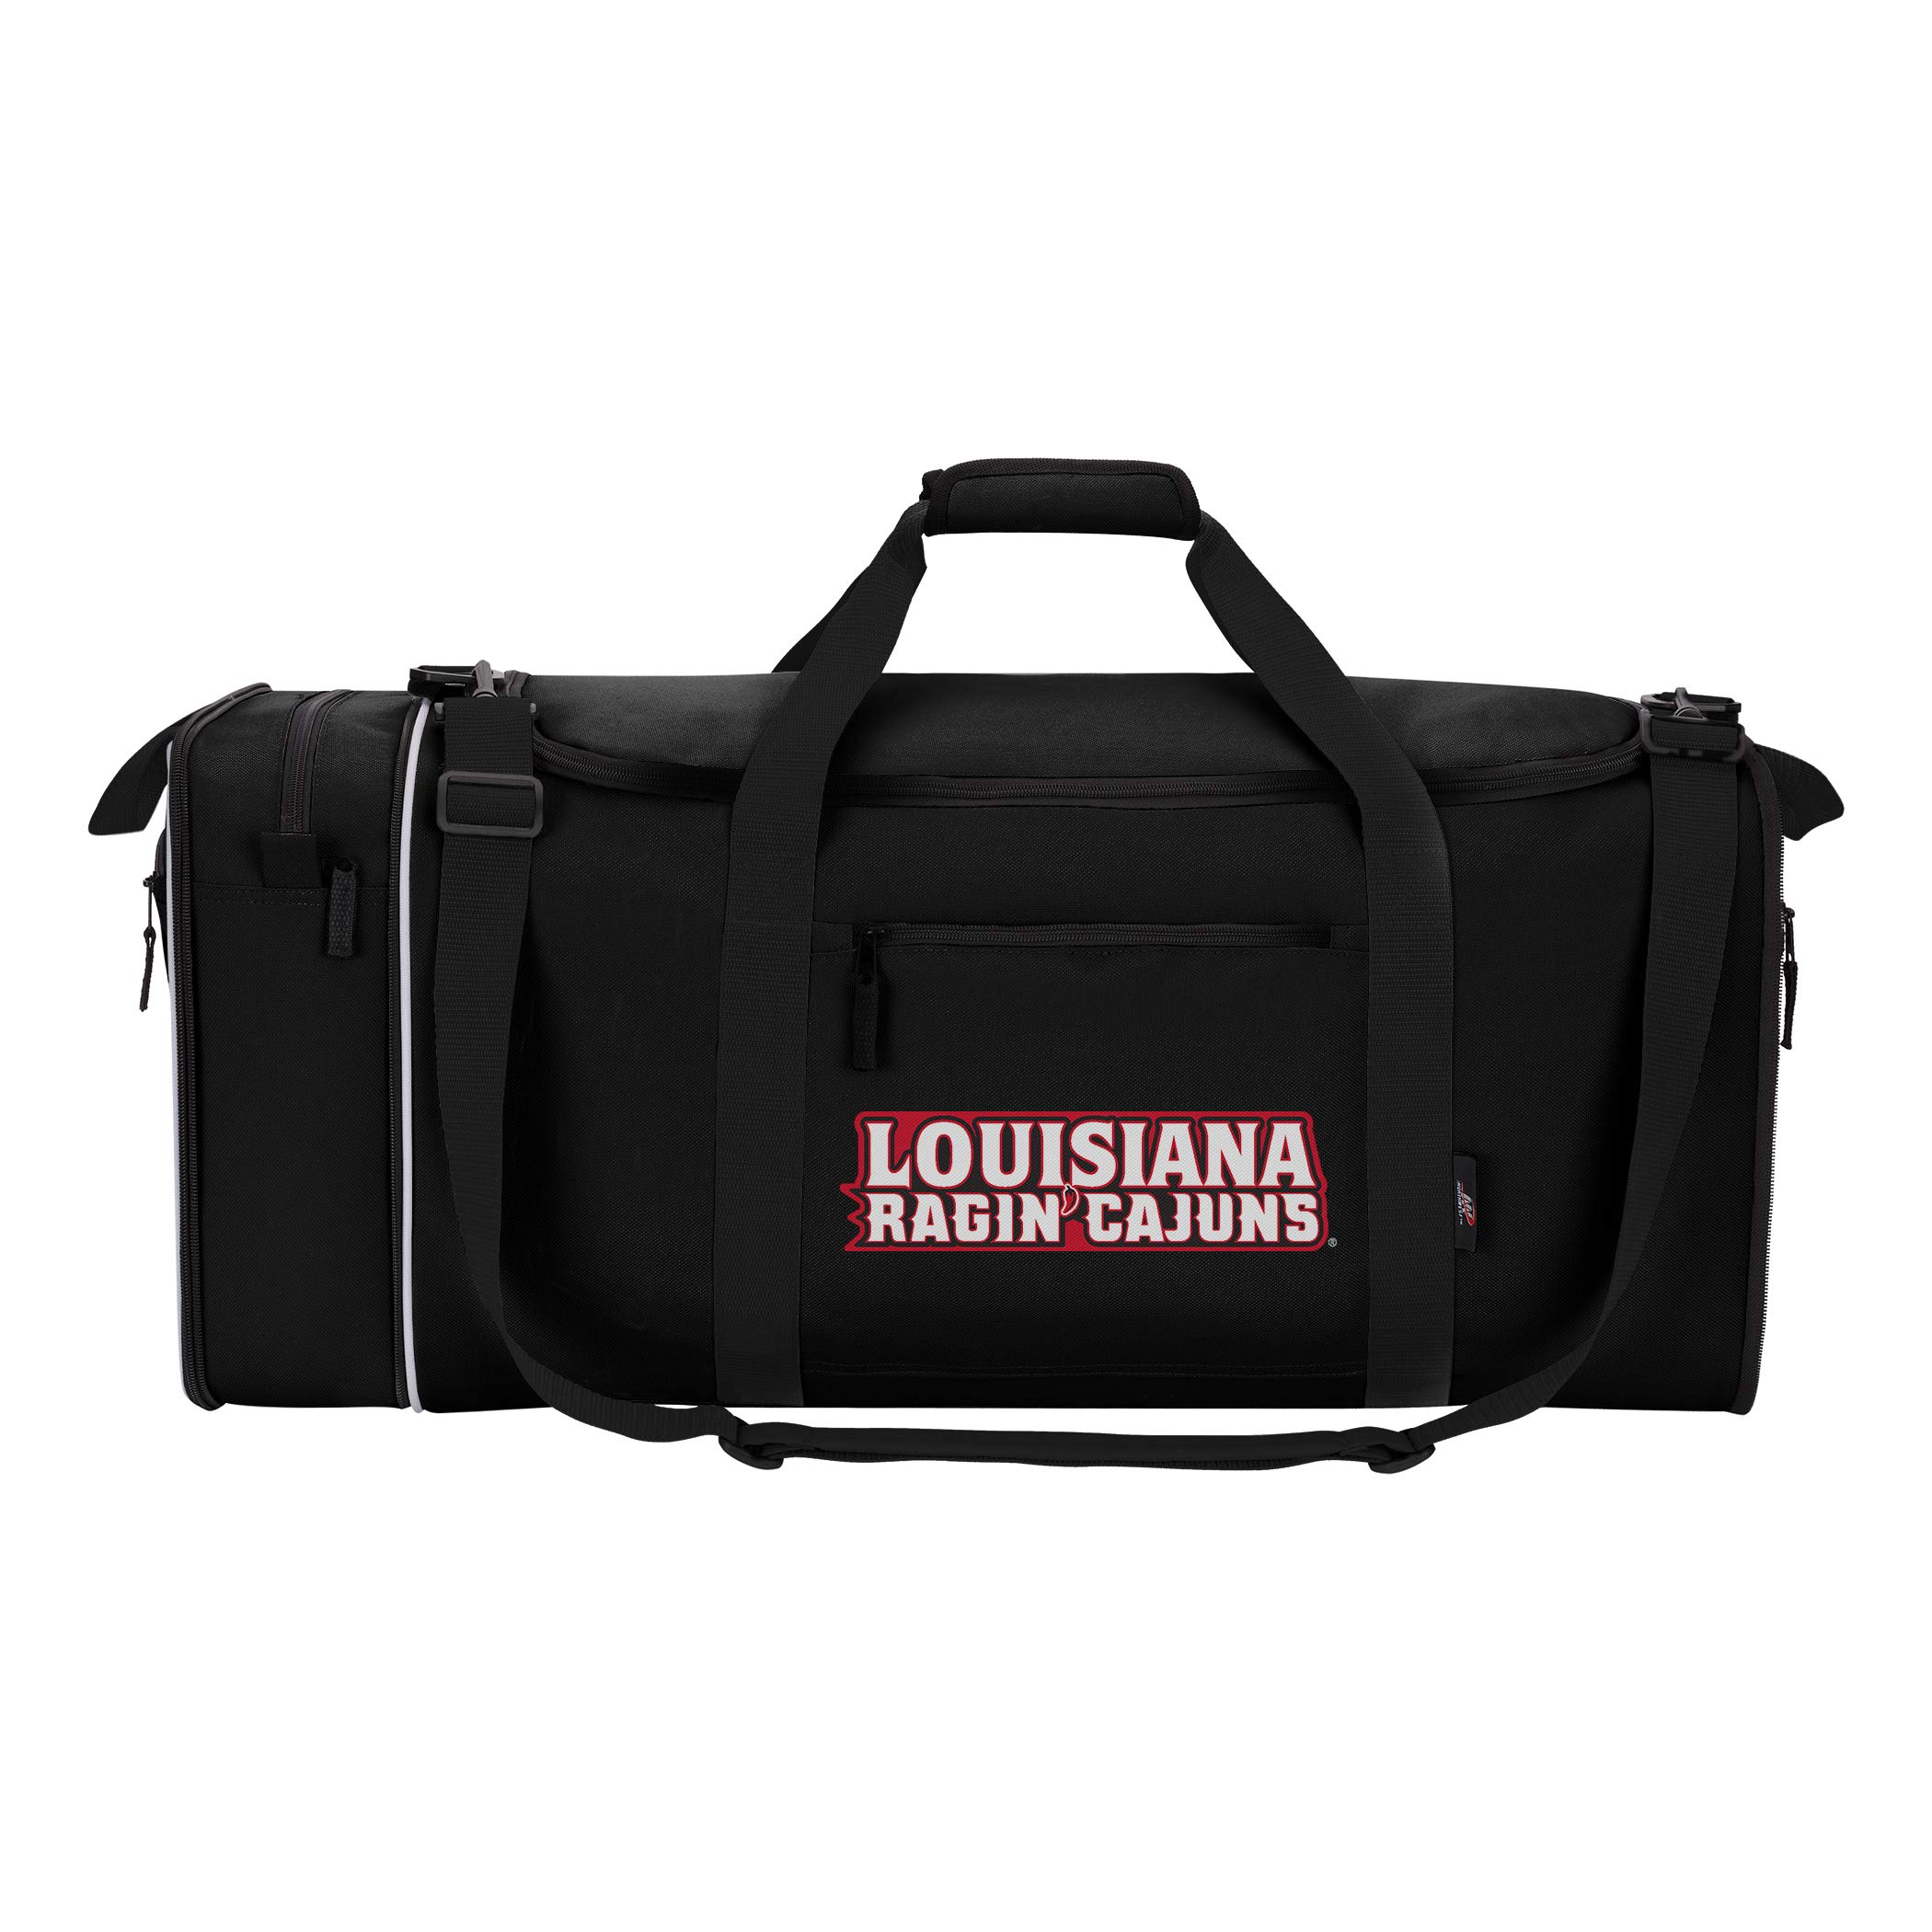 NCAA Unisex Steal Duffel Louisiana@Lafayettet Black by The Northwest Company (Image #4)